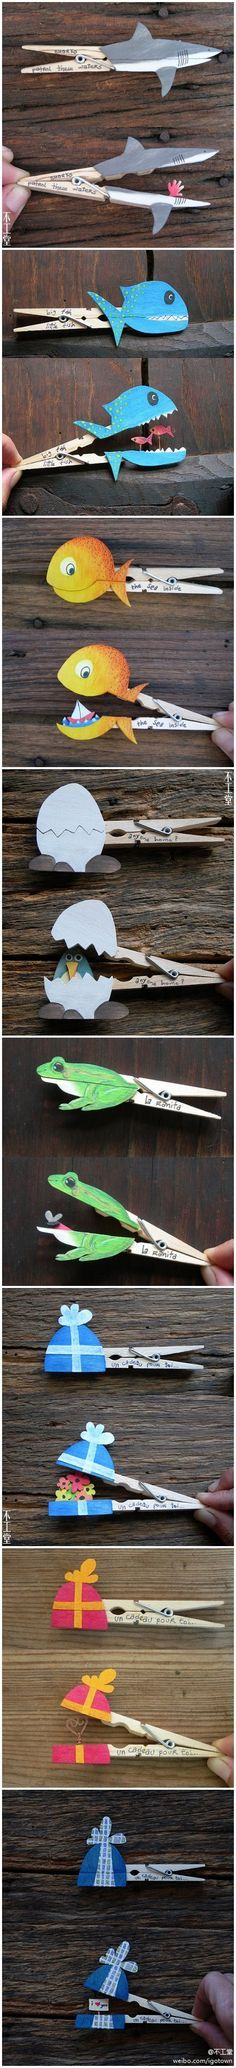 Homemade Creativity ¡Incredible!   Creatividad de andar por casa pero genial!!